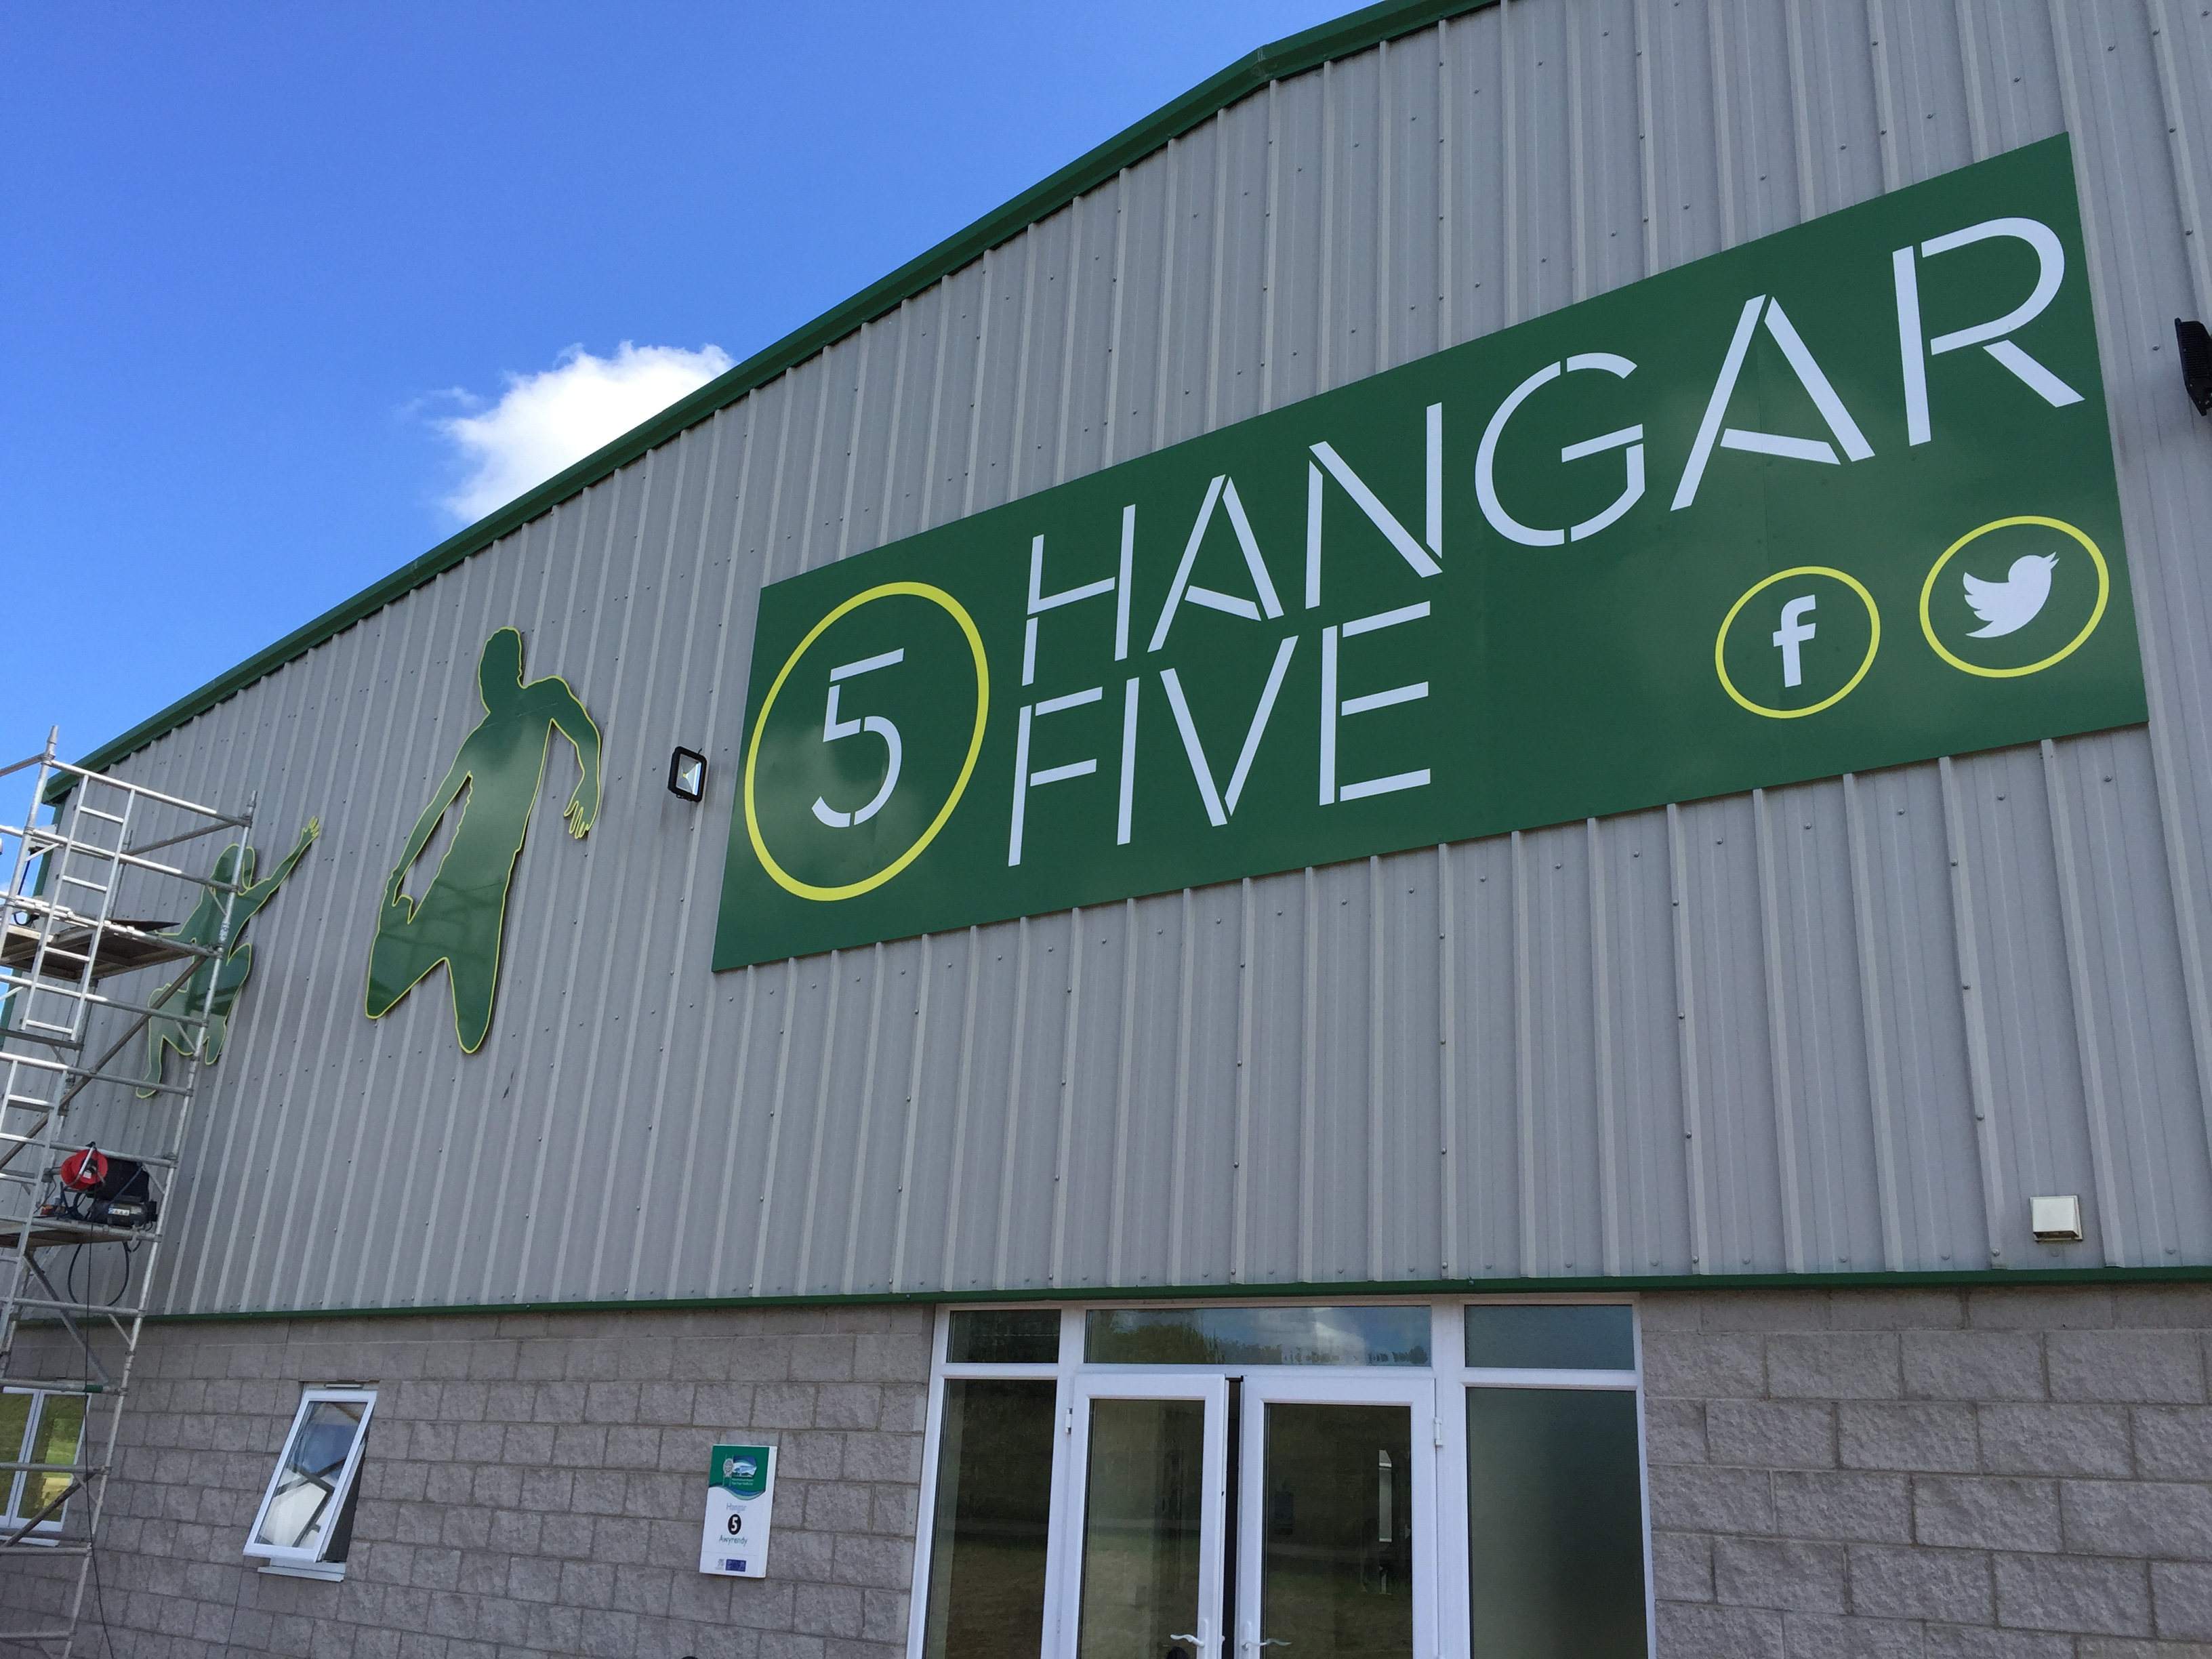 Wales First Indoor Trampoline Park